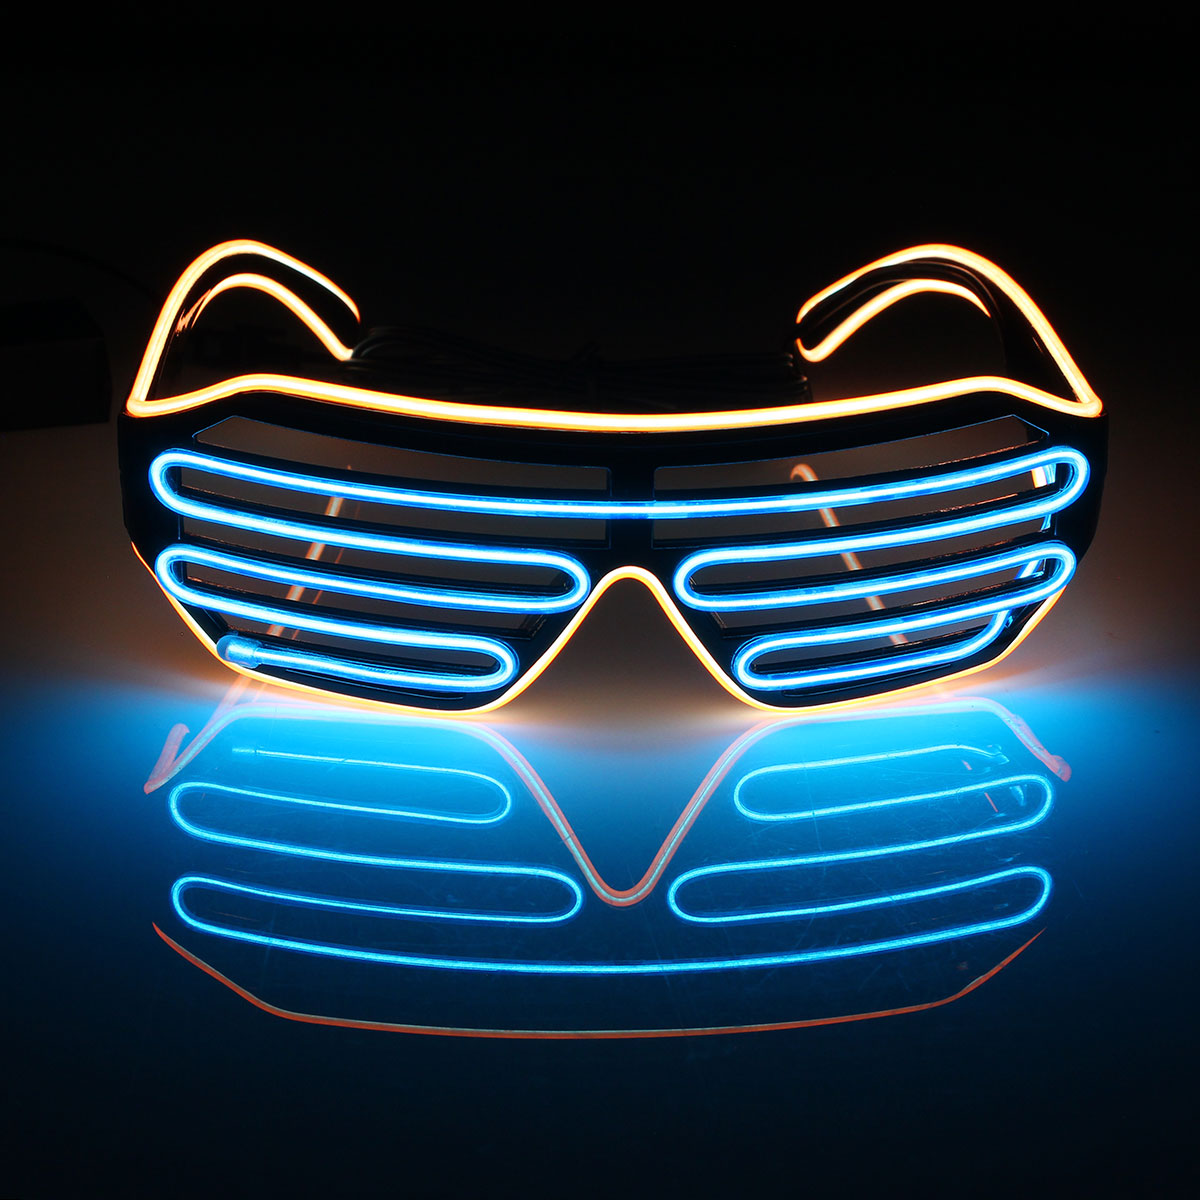 50ad8fdddab LED Light Up Glasses Women Men s Fashion Colorful El Wire Glasses Neon  Shutter Shaped Glow Light Sun Glasses For Rave Costume Party Club Halowwen  Festivals ...